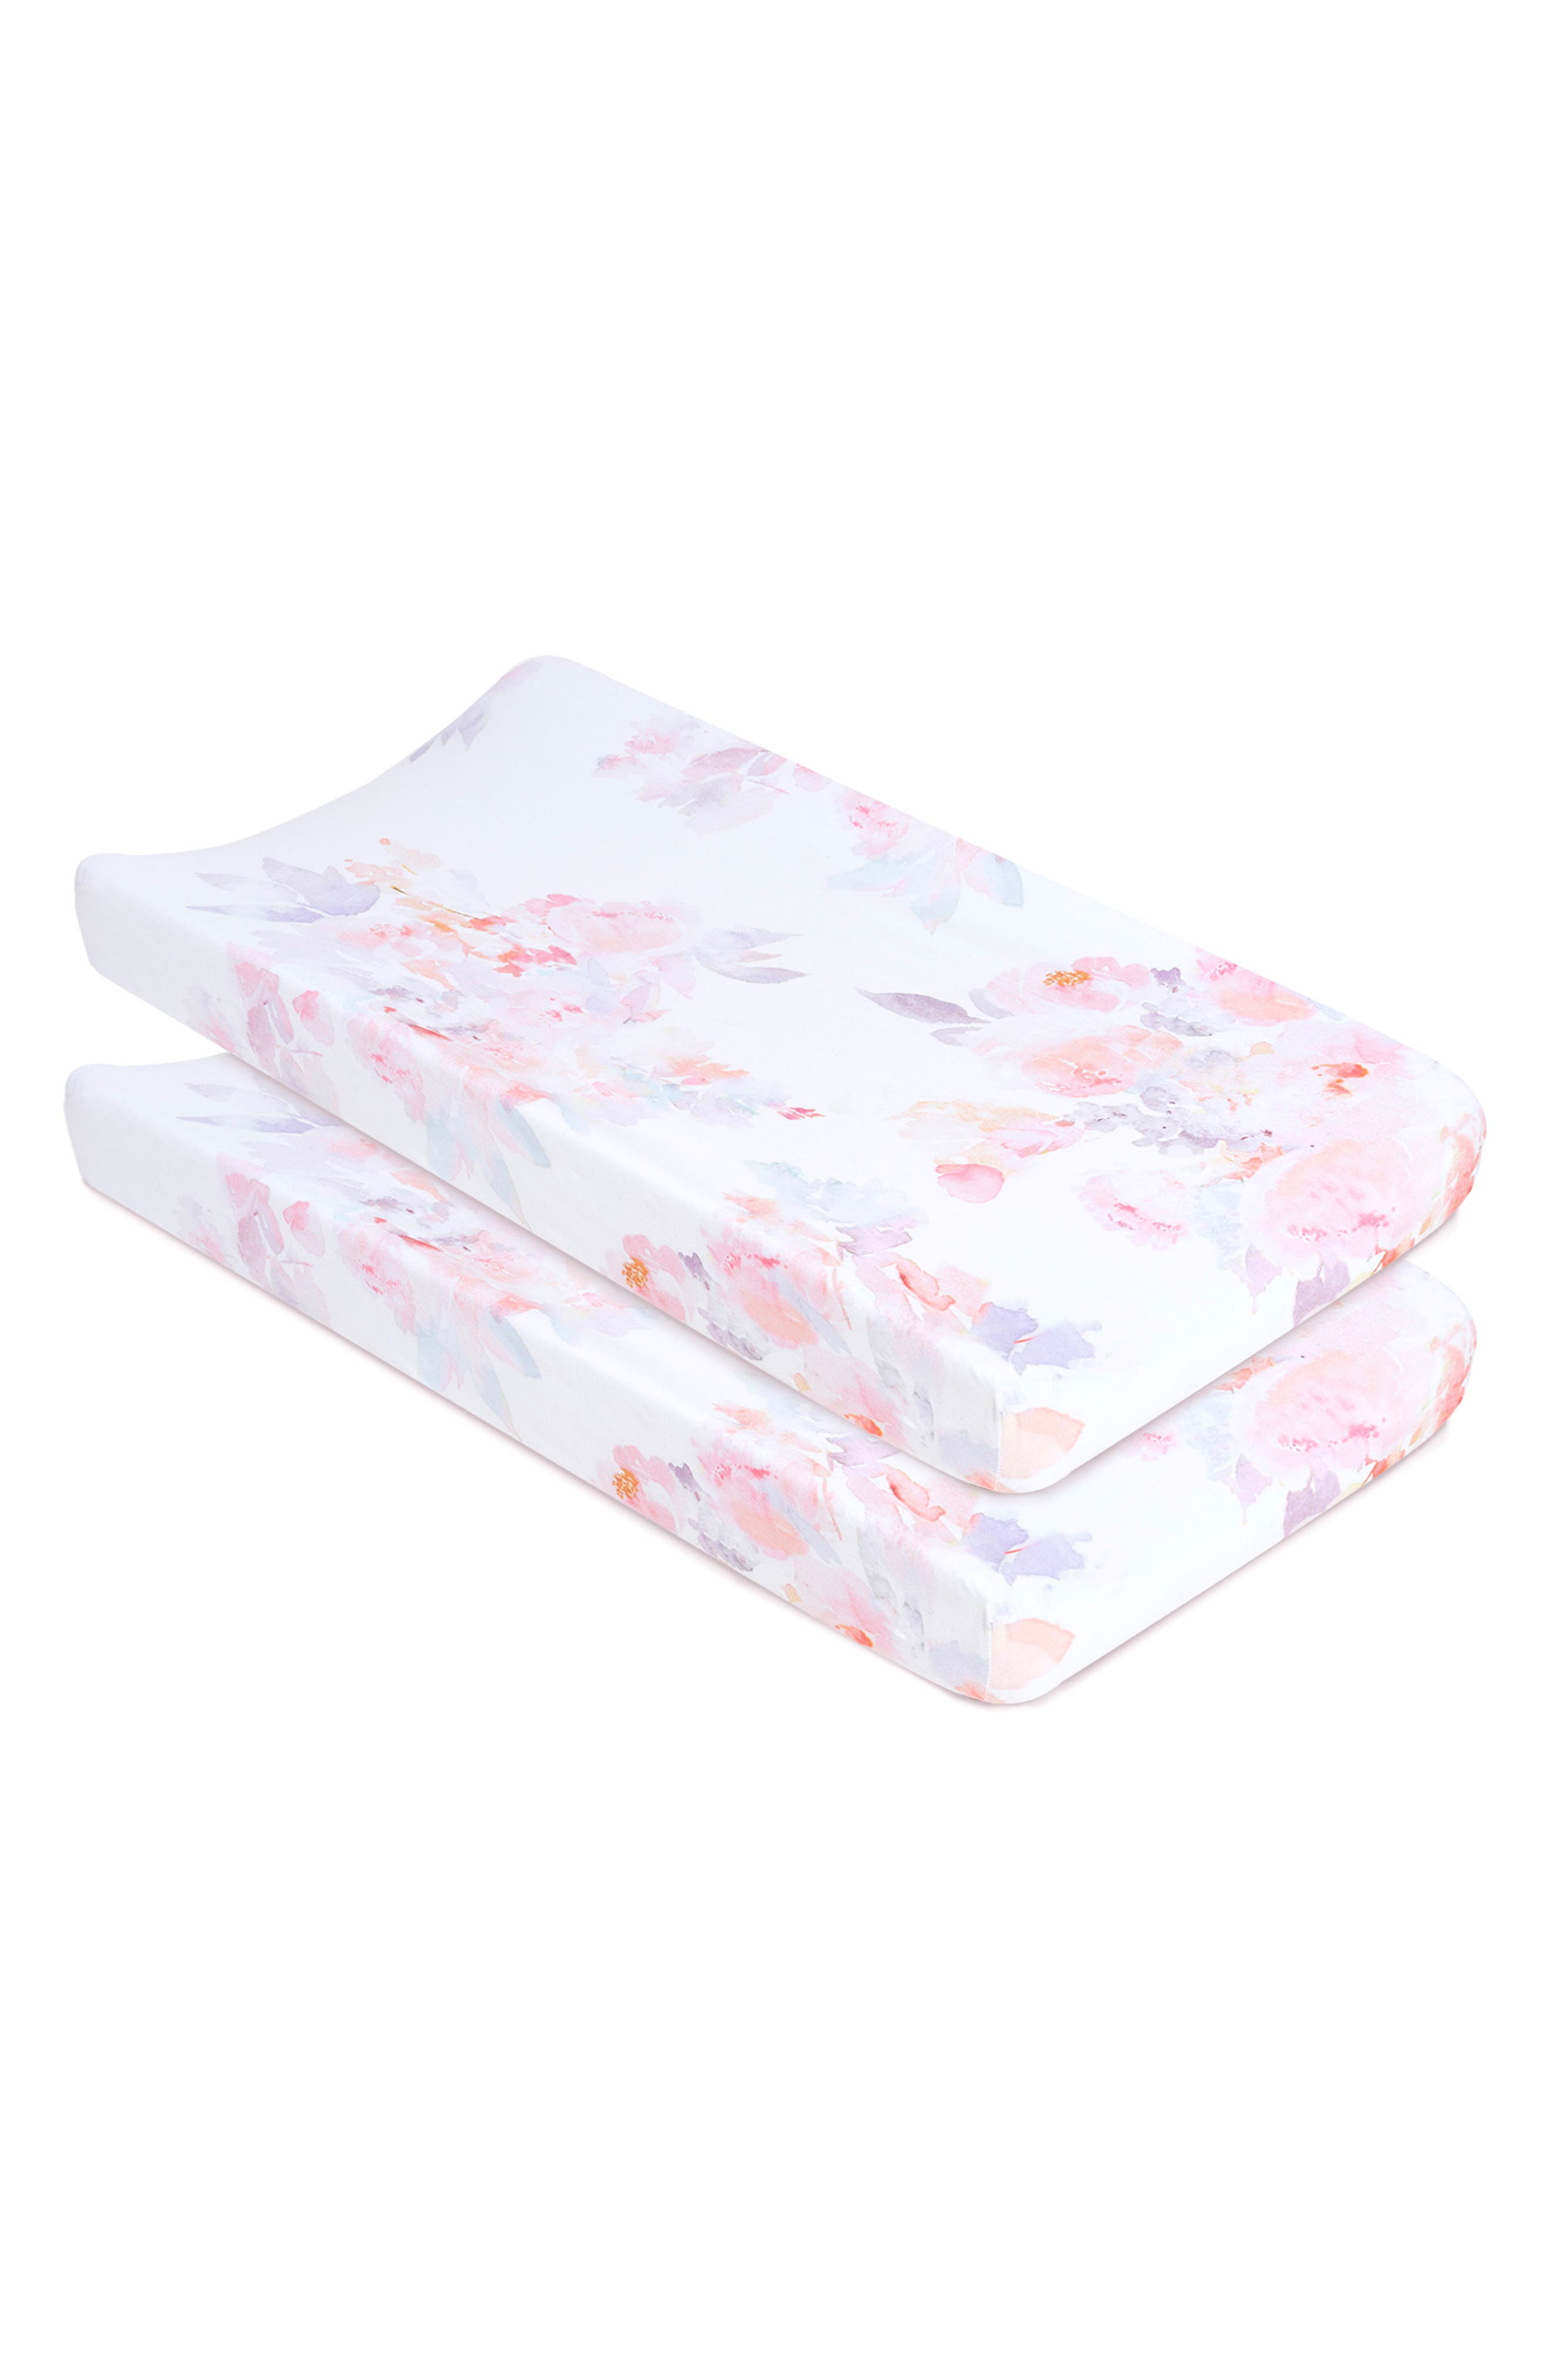 Alternate Image 1 Selected - Oilo Prim 2-Pack Jersey Changing Pad Covers